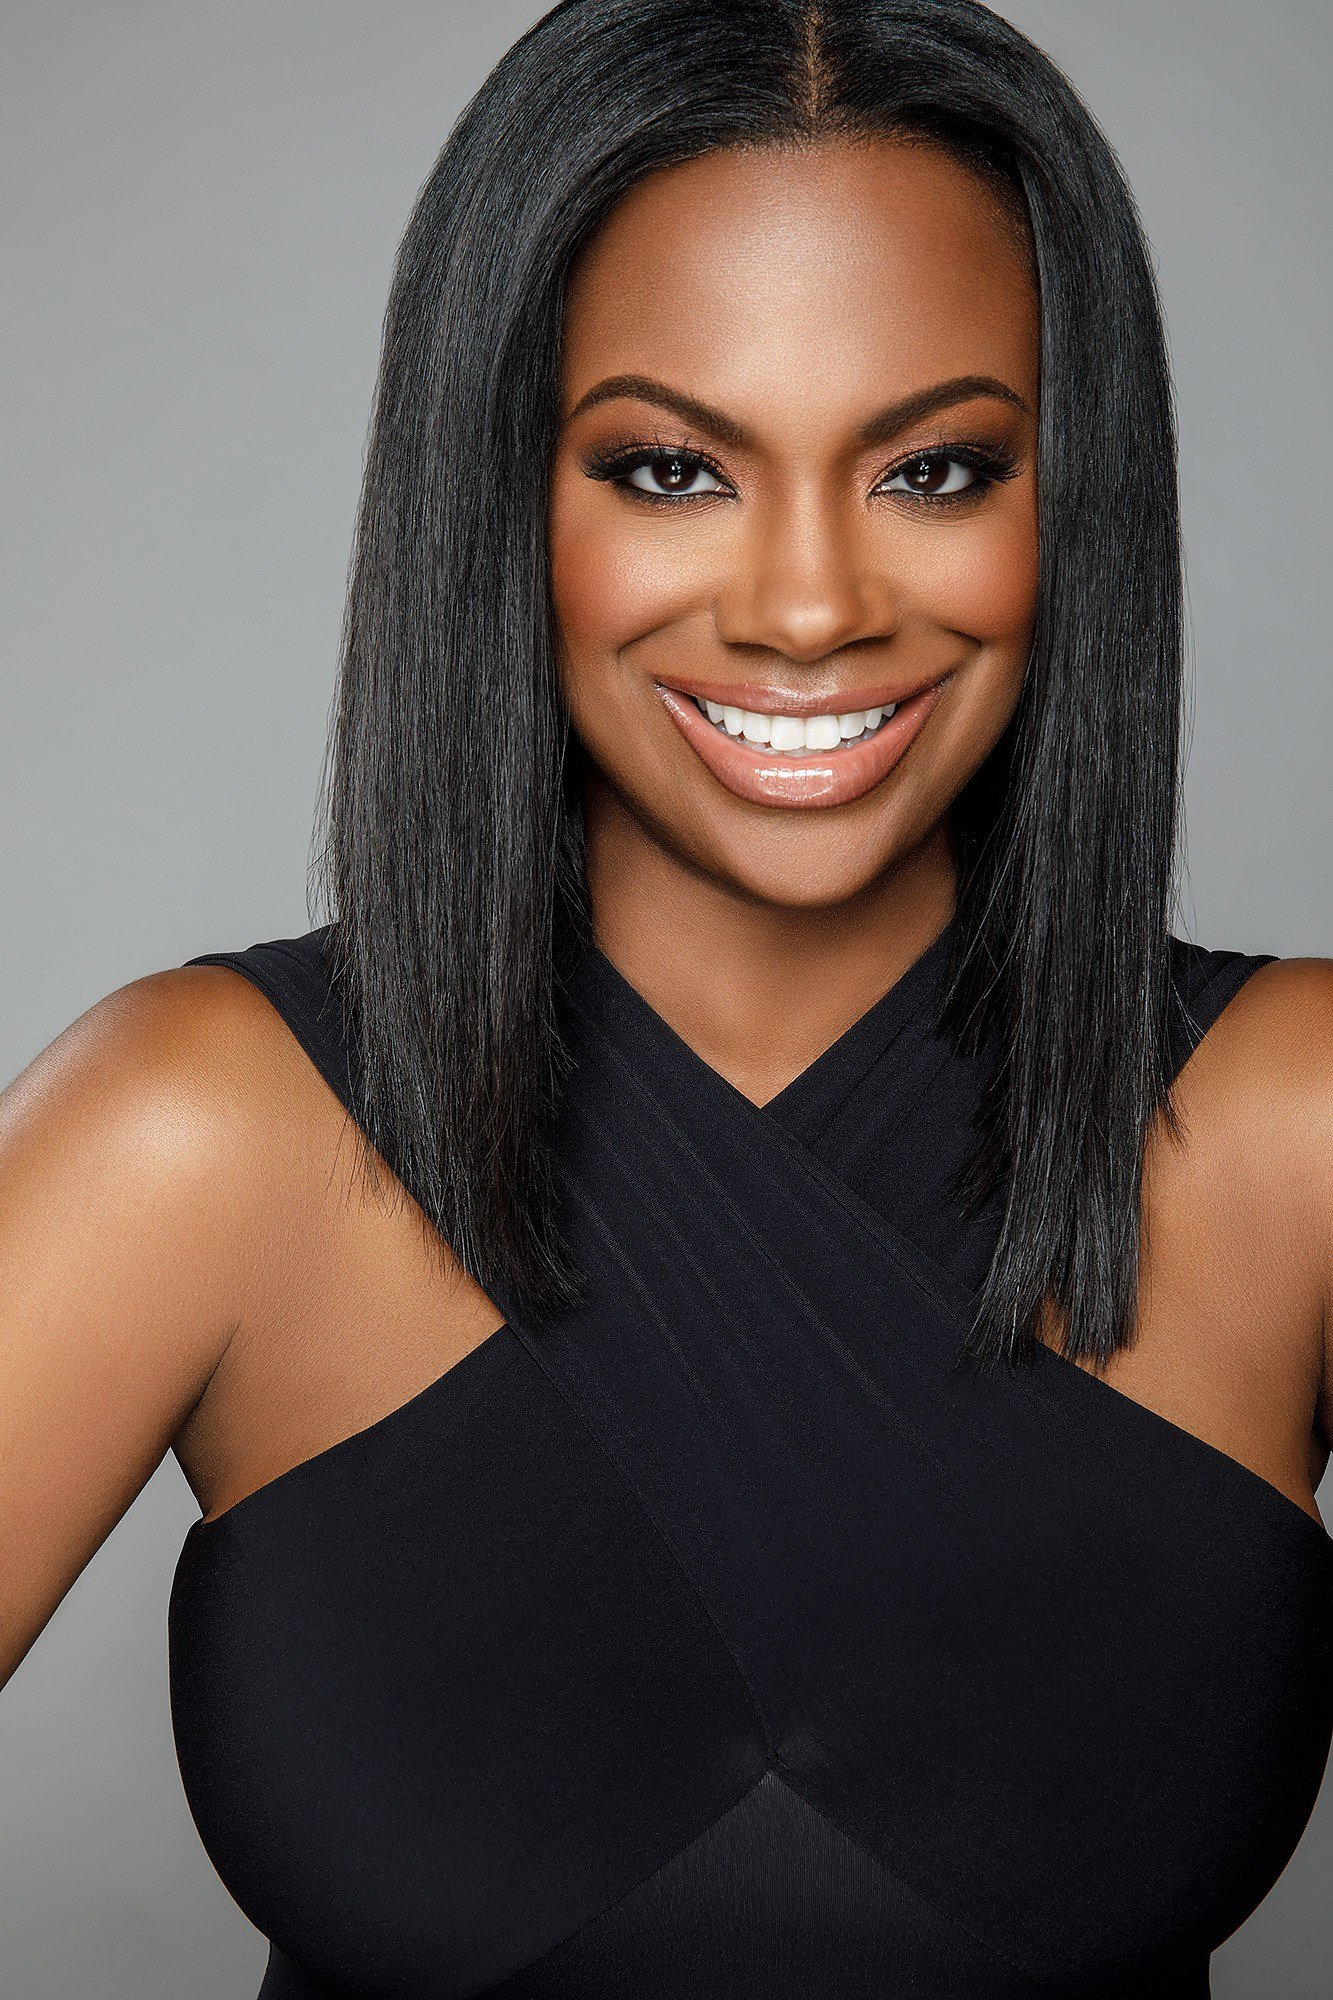 The Best Kandi Burruss Joins The Cast Of Chicago On Broadway Pictures